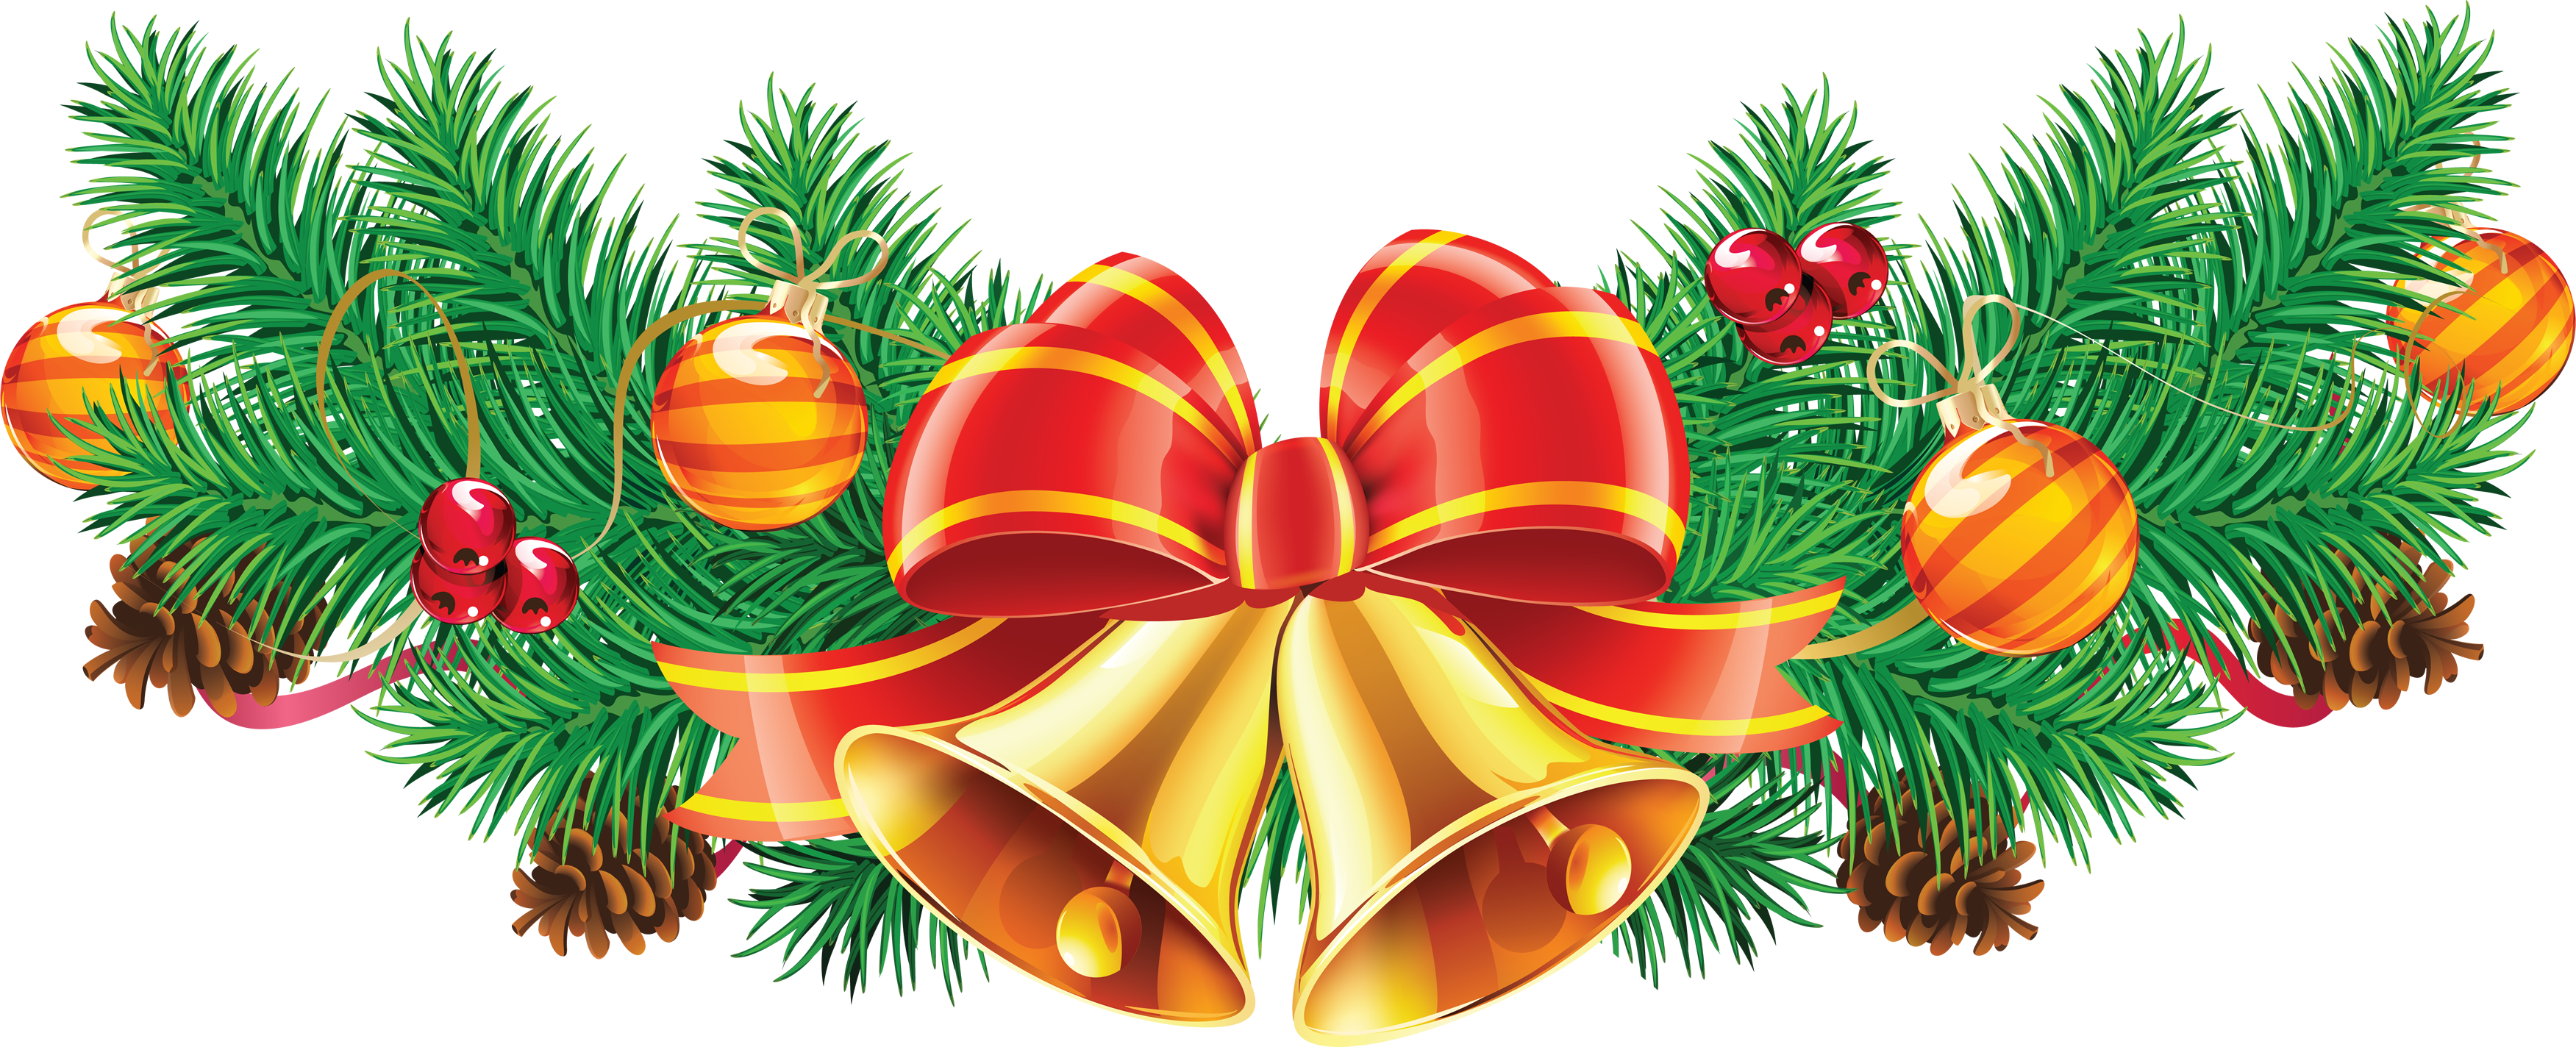 high resolution christmas clipart png transparent background free download 35314 freeiconspng high resolution christmas clipart png